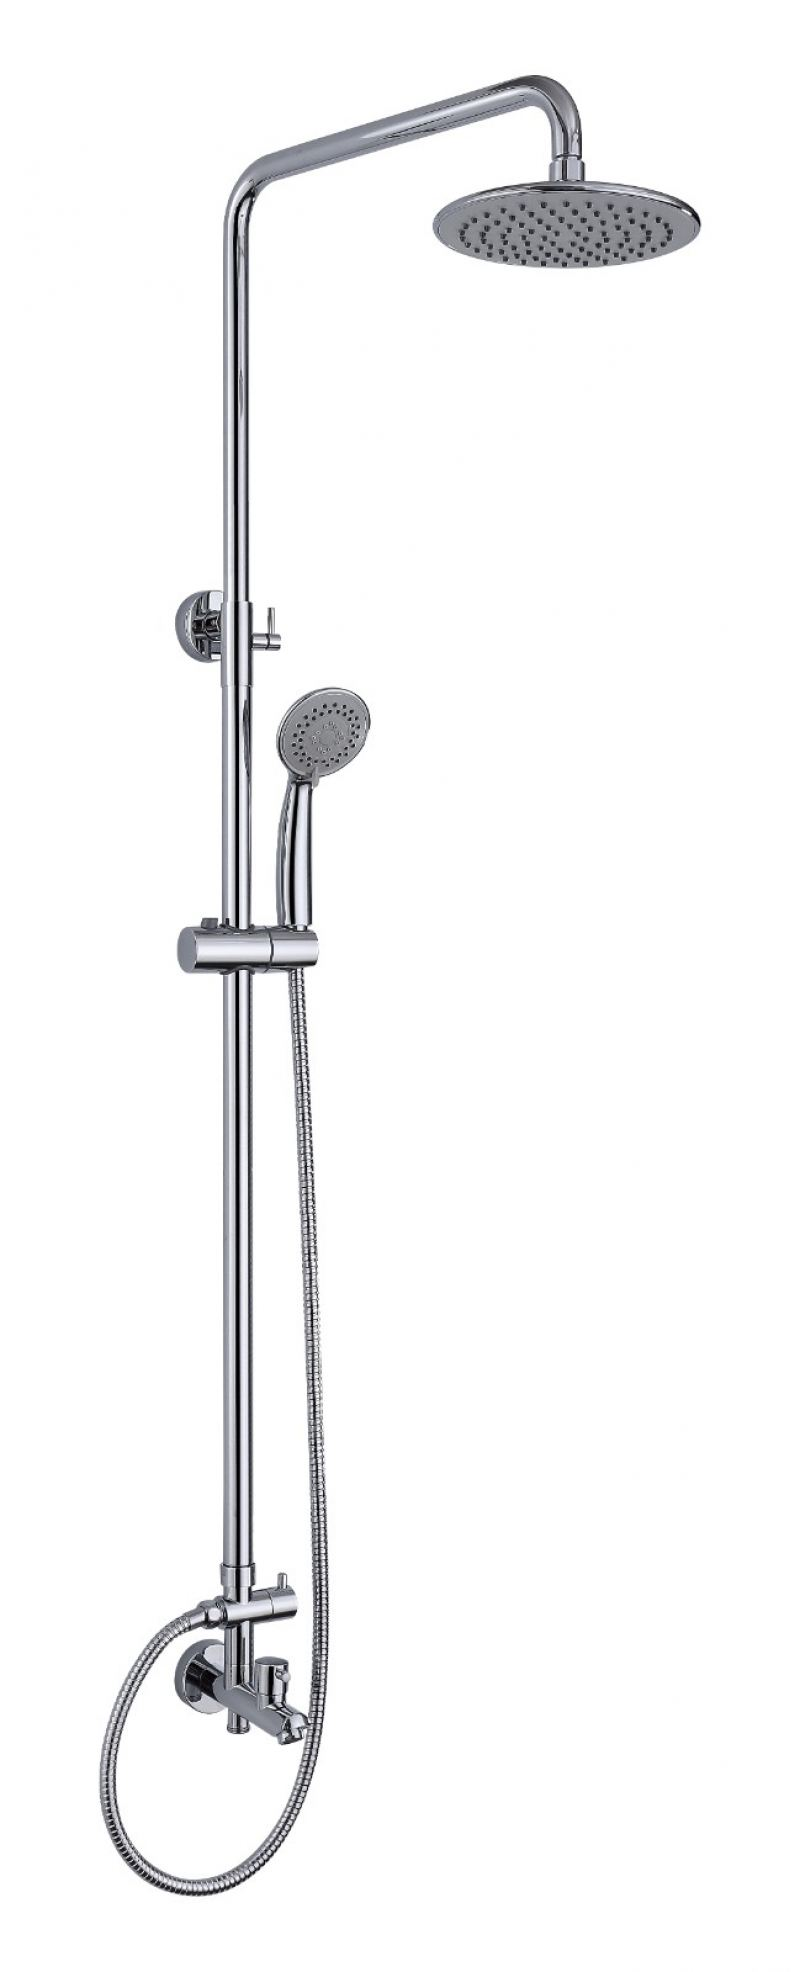 Exposed Shower Set 3 Way Brass CH